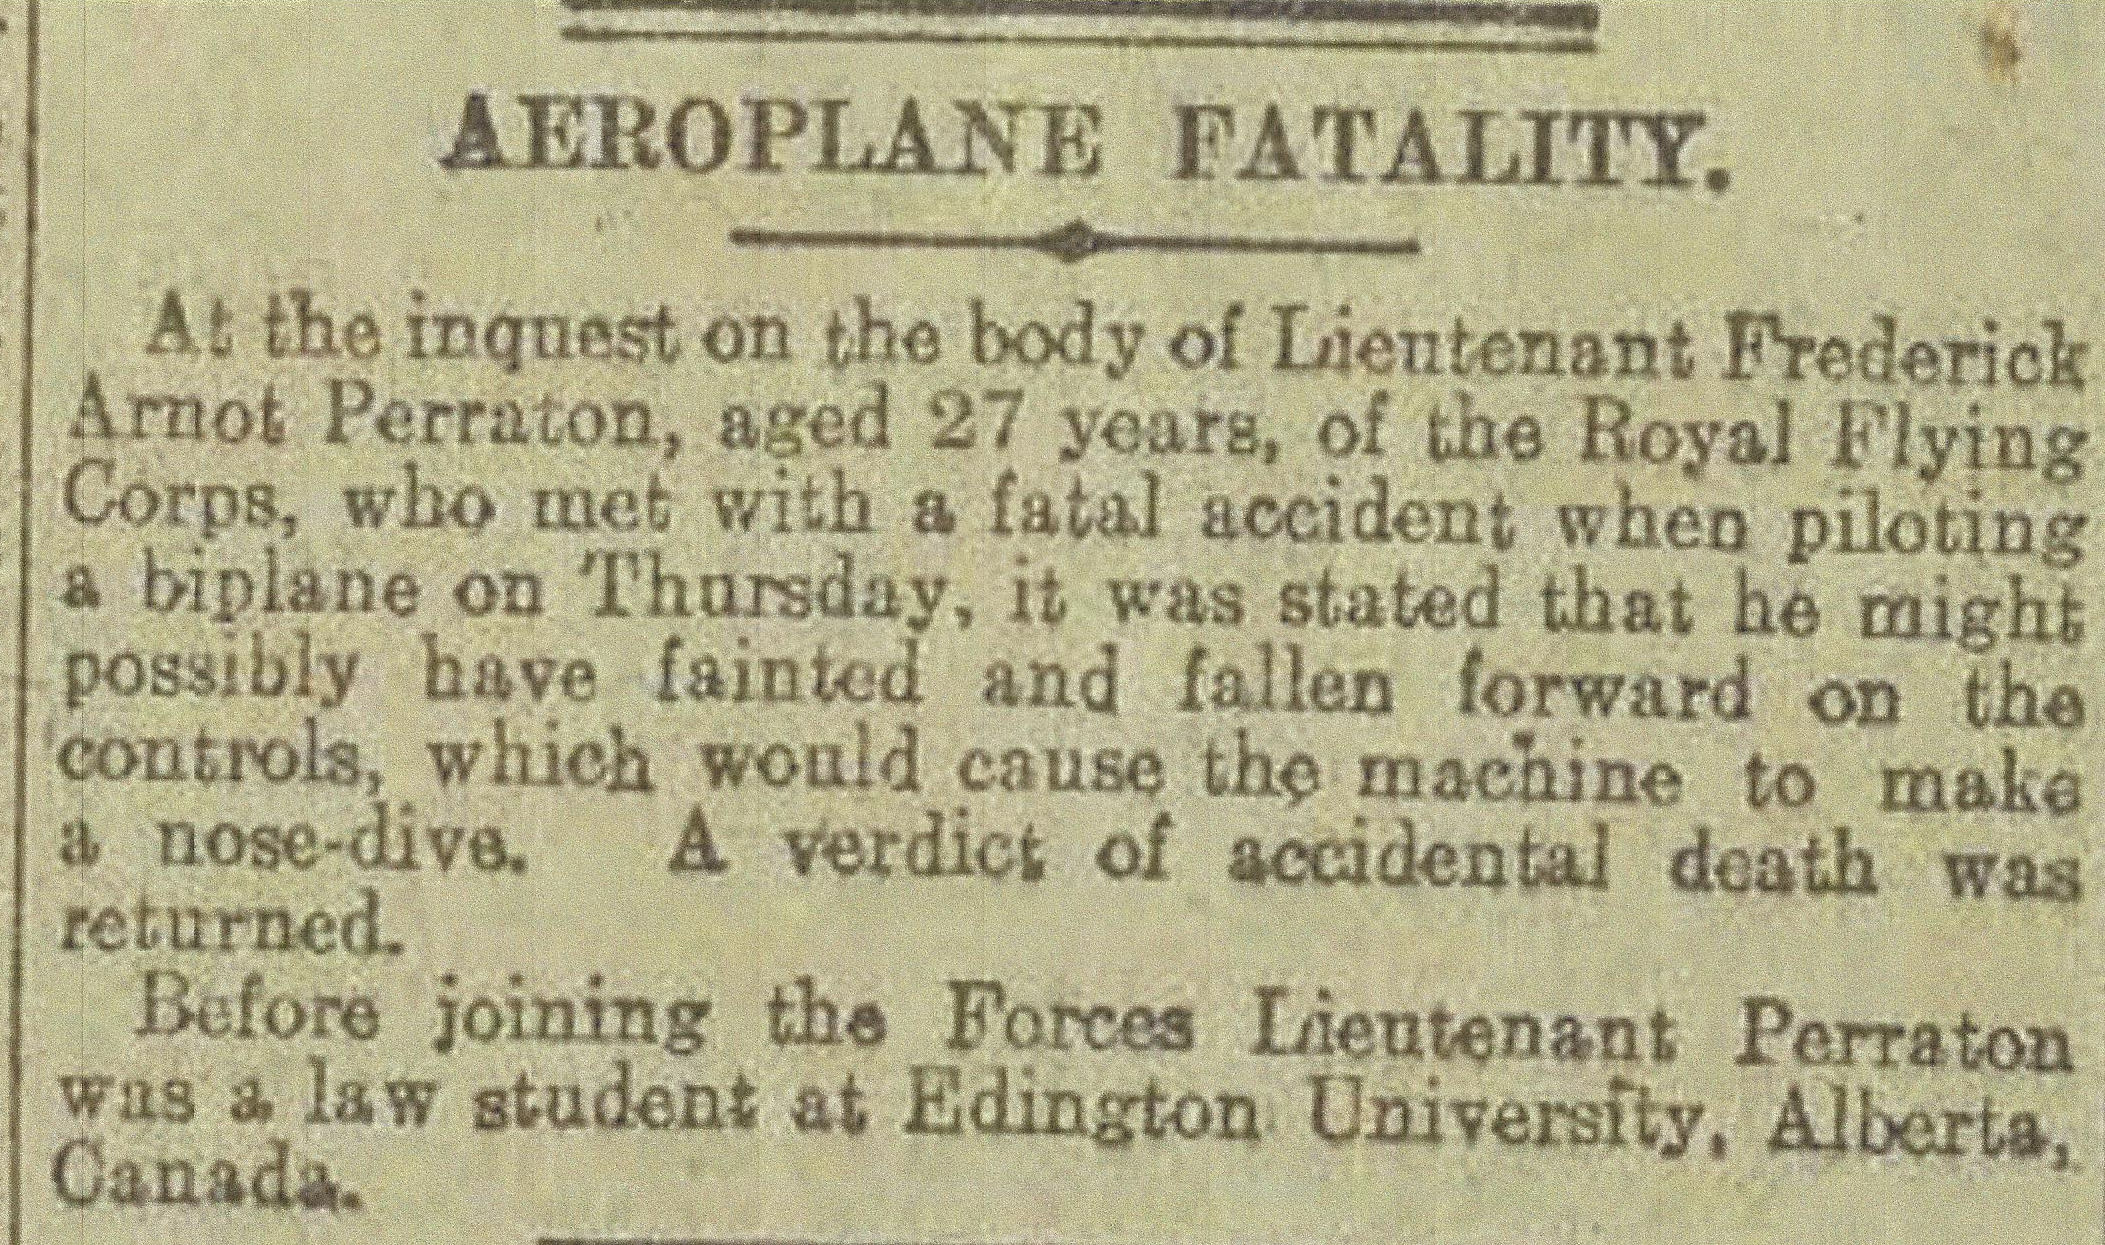 Newspaper Clipping – Newspaper clipping from Daily Telegraph of March 5, 1917. Image taken from web address of http://www.telegraph.co.uk/news/ww1-archive/12214358/Daily-Telegraph-March-5-1917.html